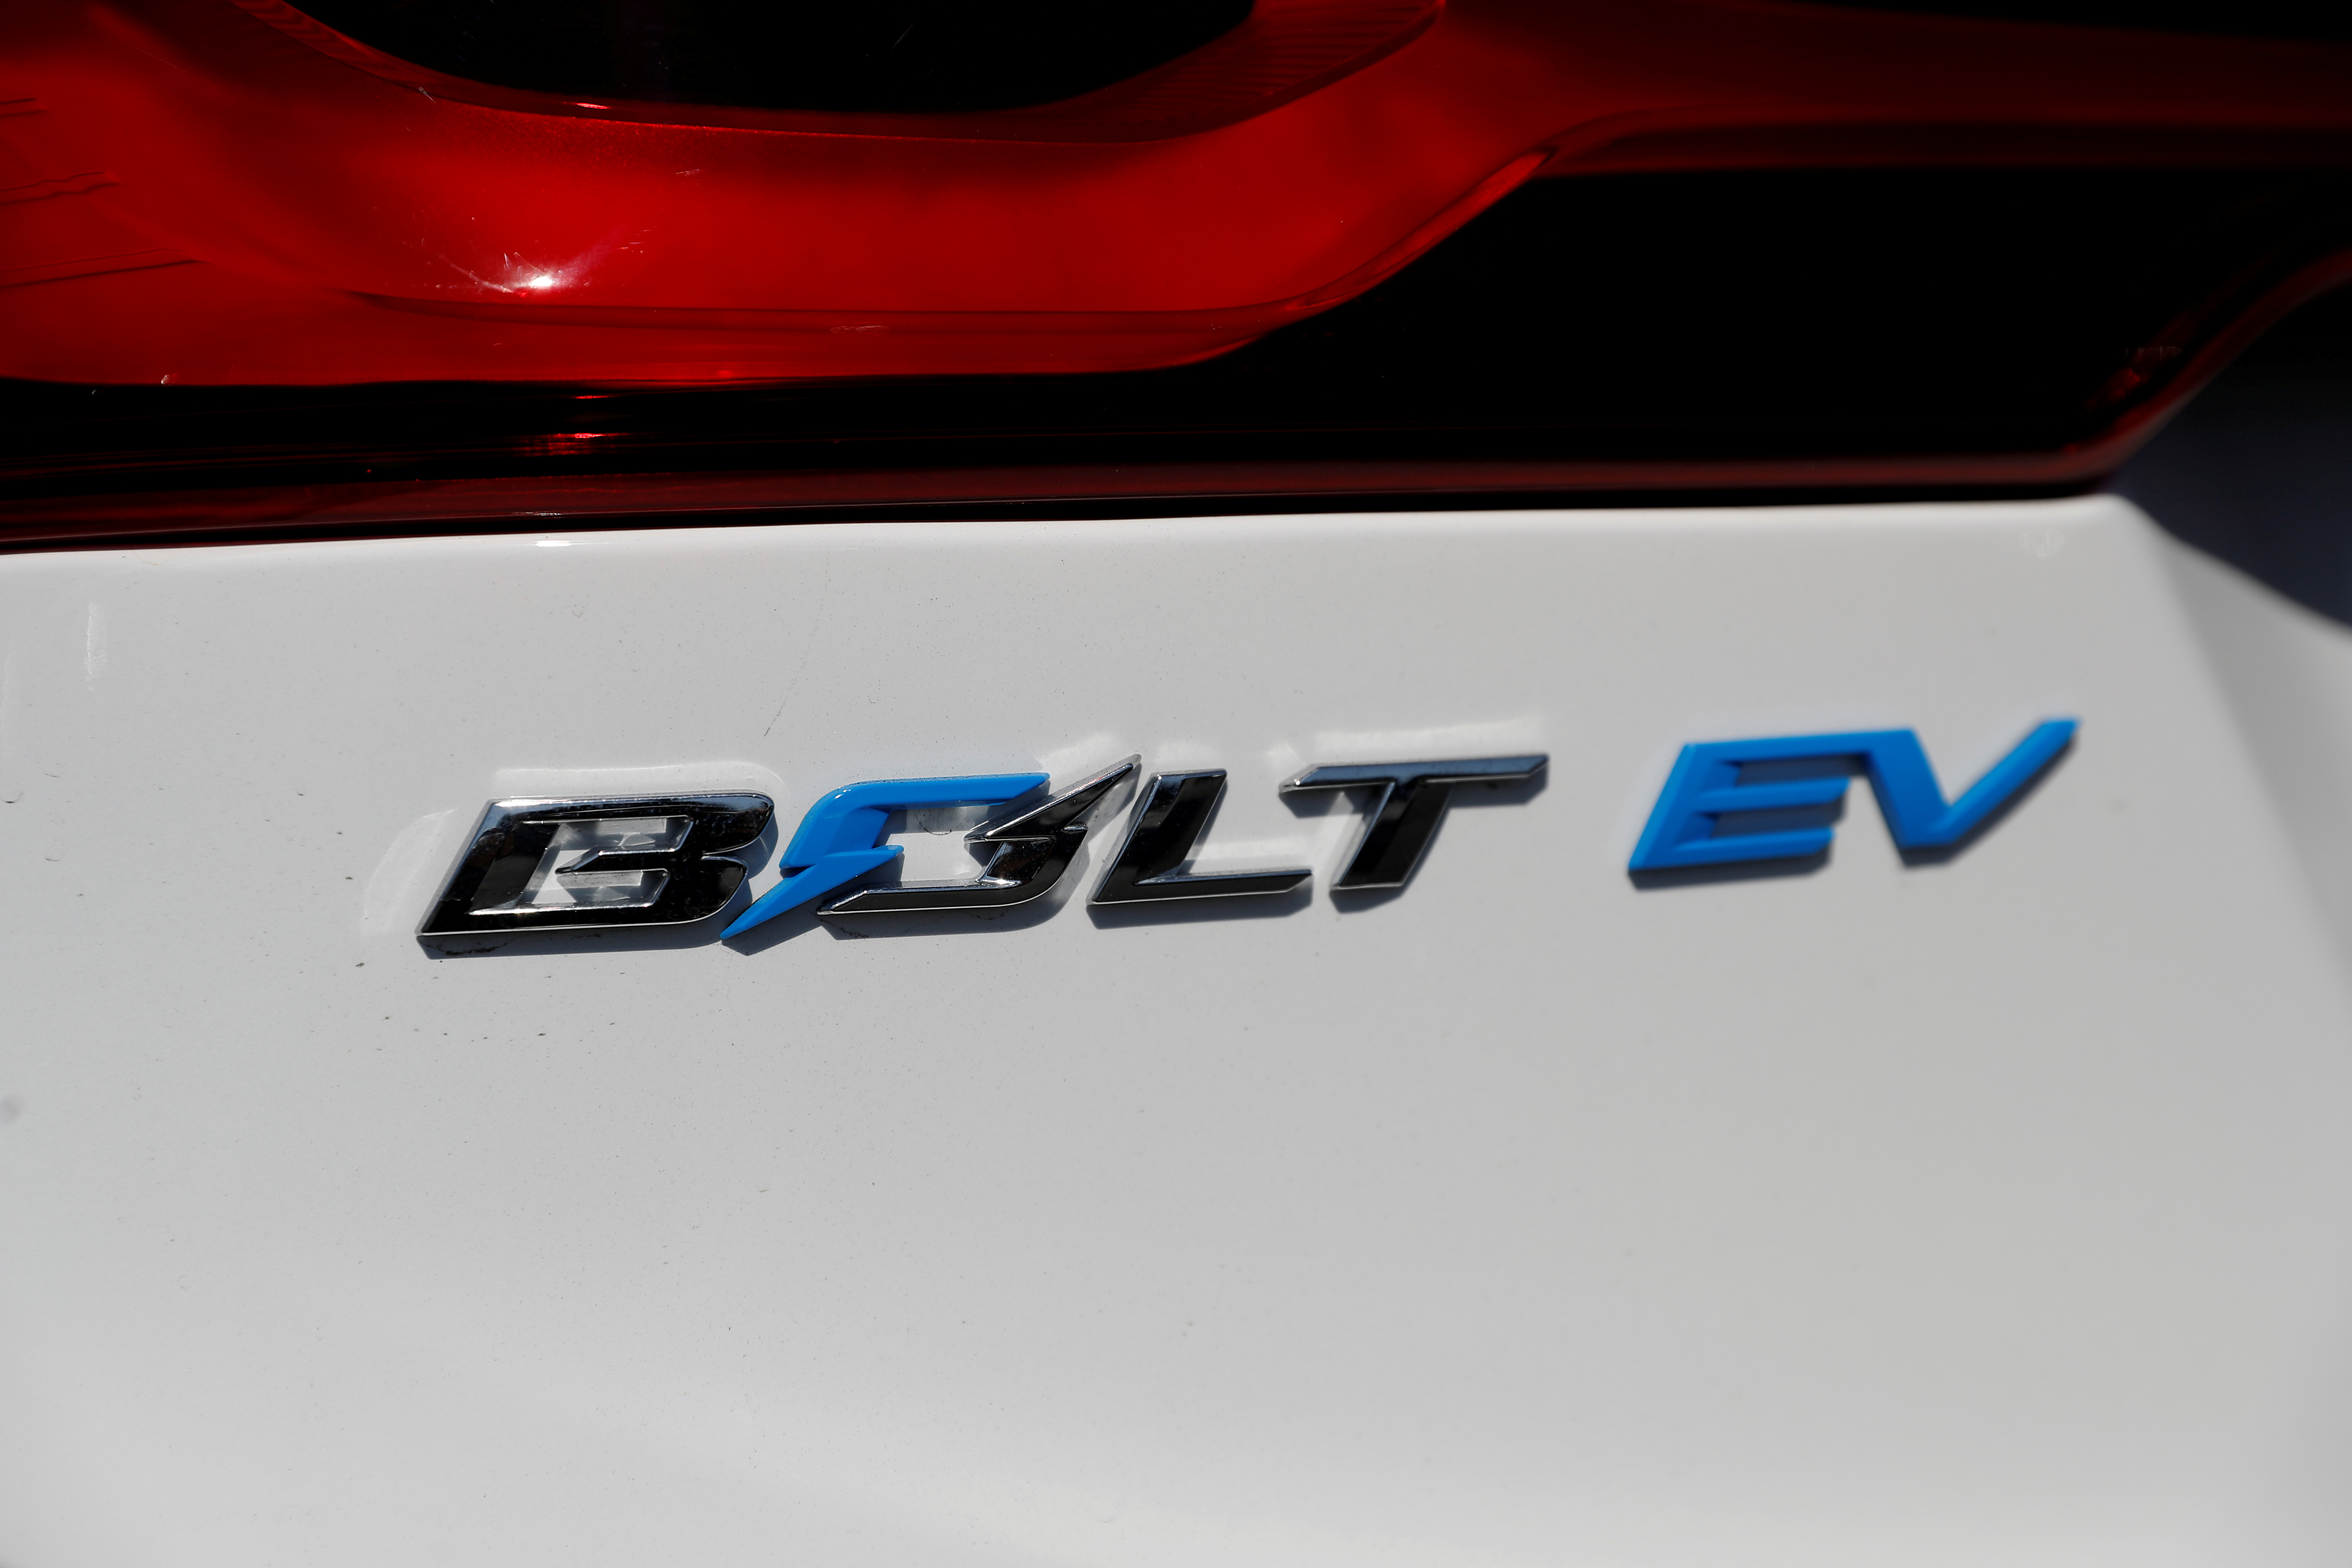 A close-up view of the Chevrolet Bolt electric vehicle logo is seen at Stewart Chevrolet in Colma, California, U.S., October 3, 2017. REUTERS/Stephen Lam